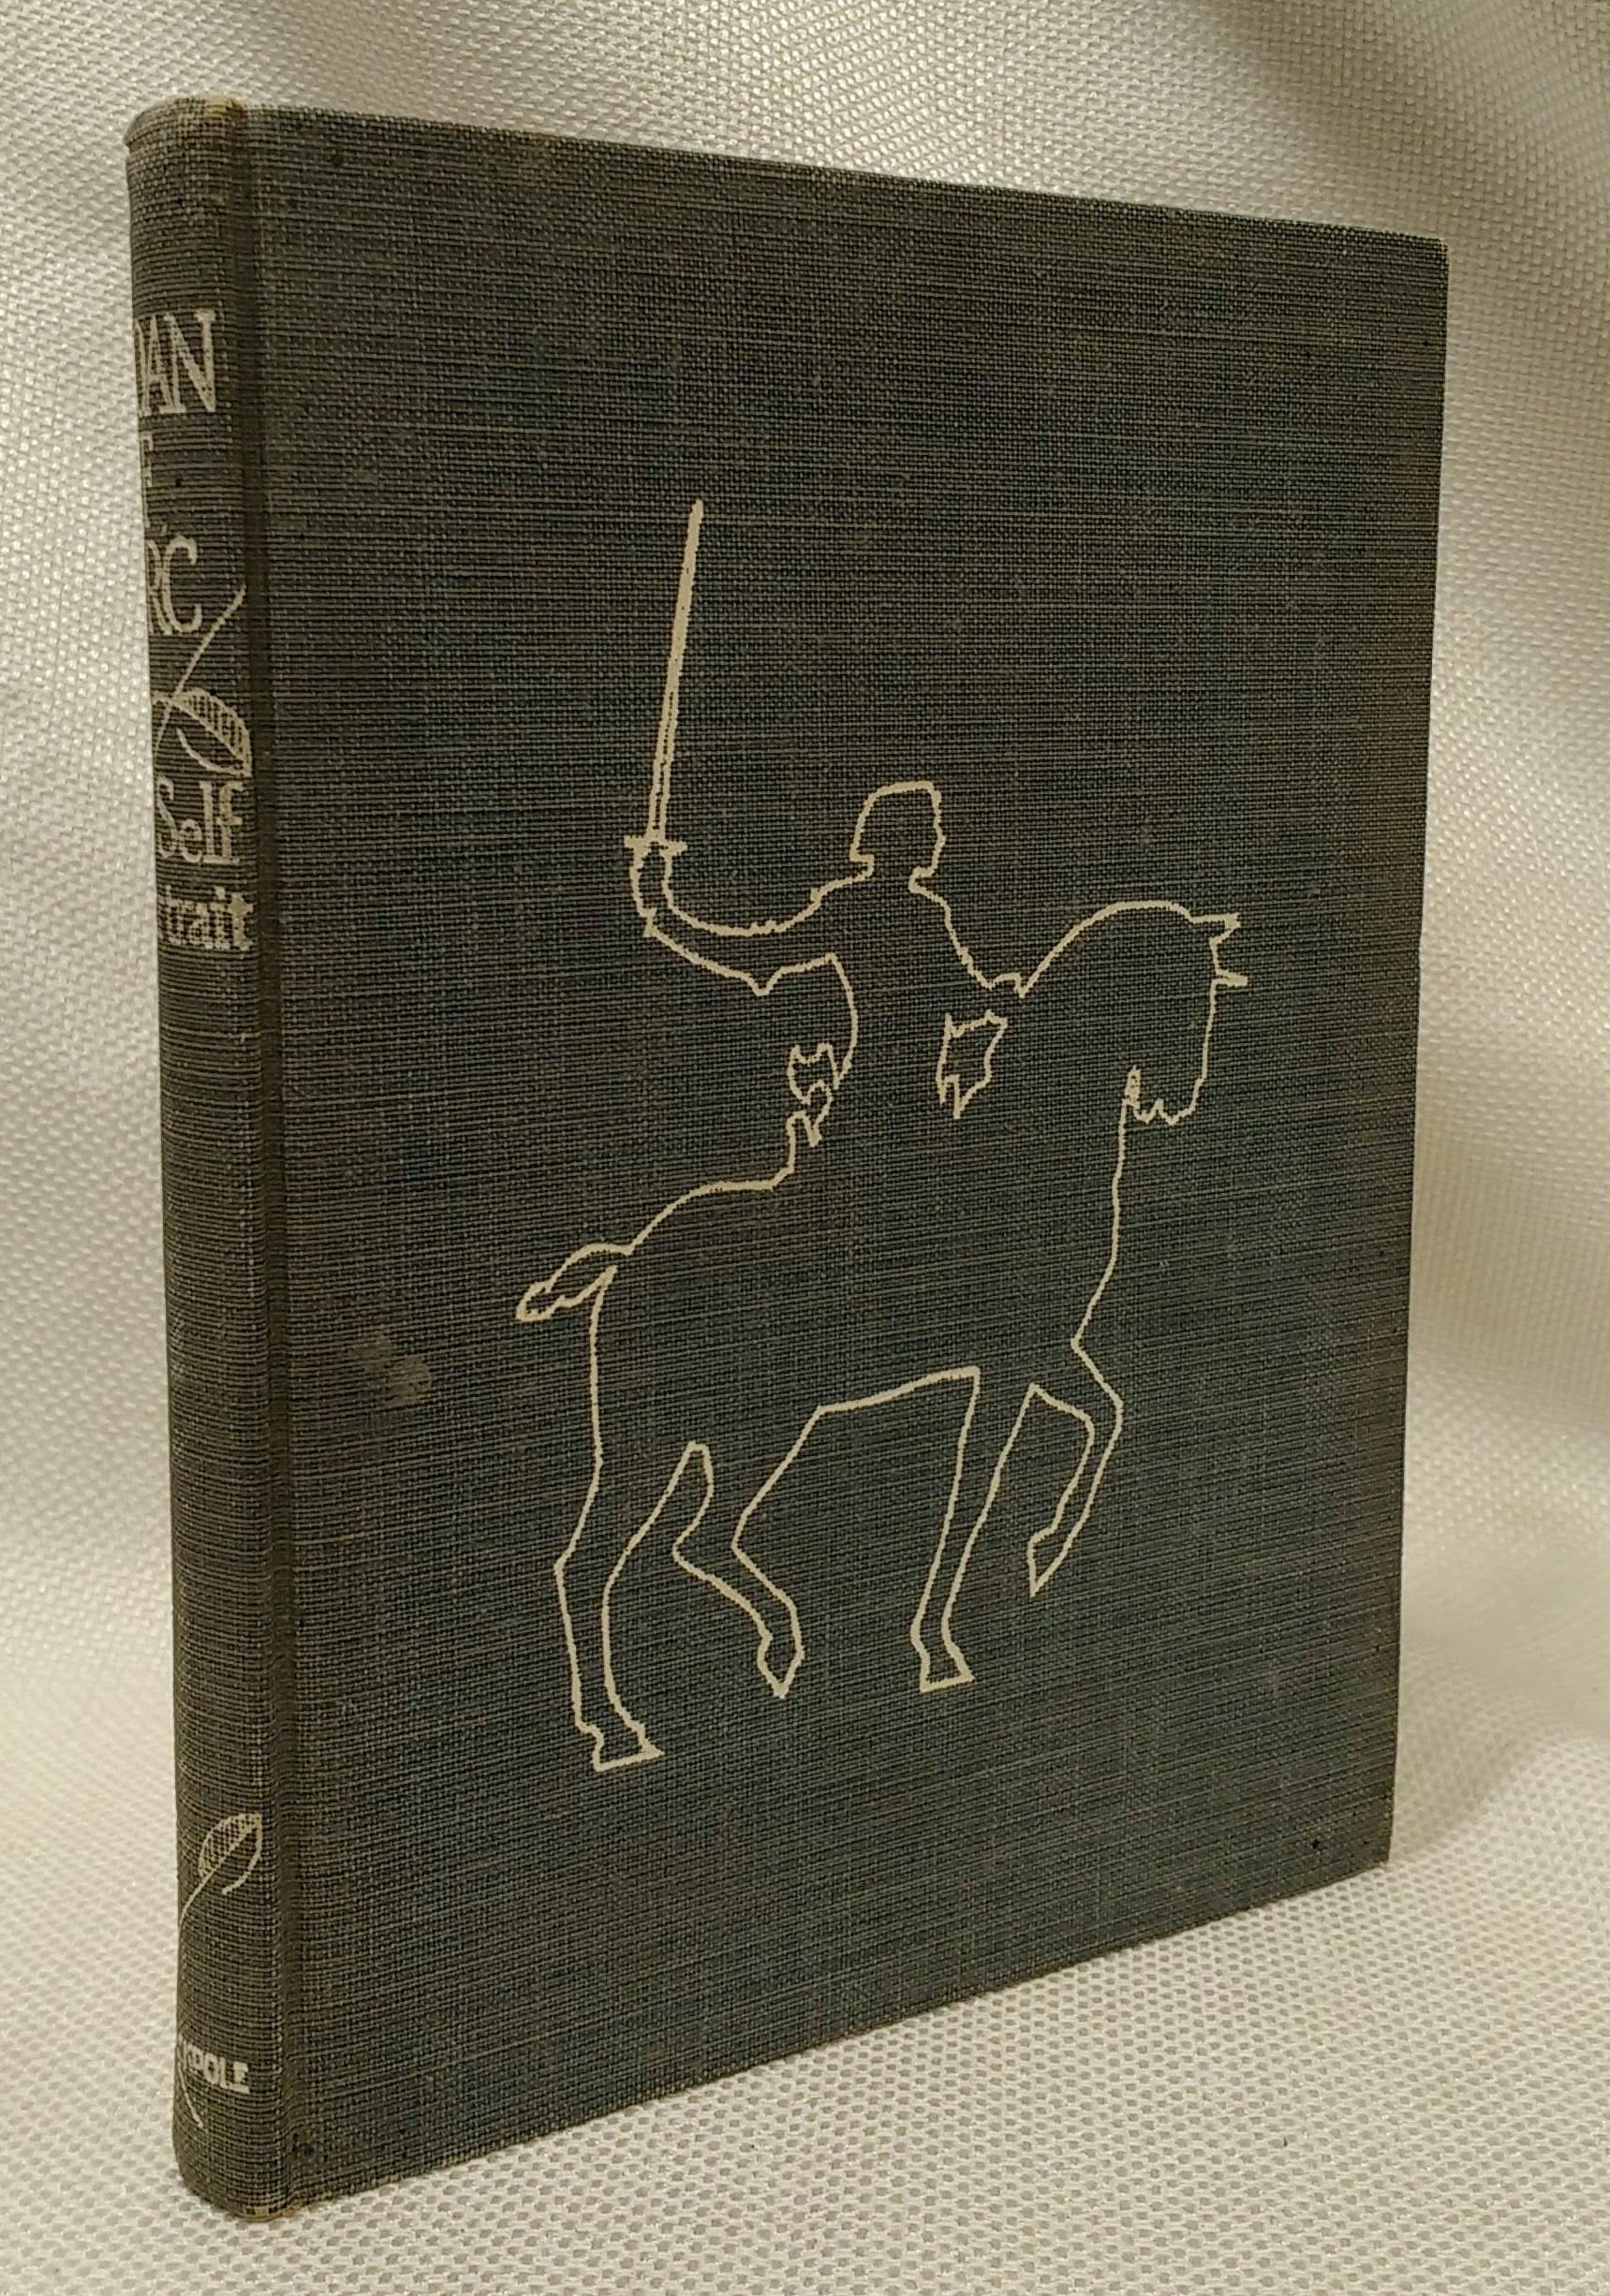 Joan of Arc, A Self-Portrait; Compiled and Translated Into English from the Orig, Trask, Willard (transl.)